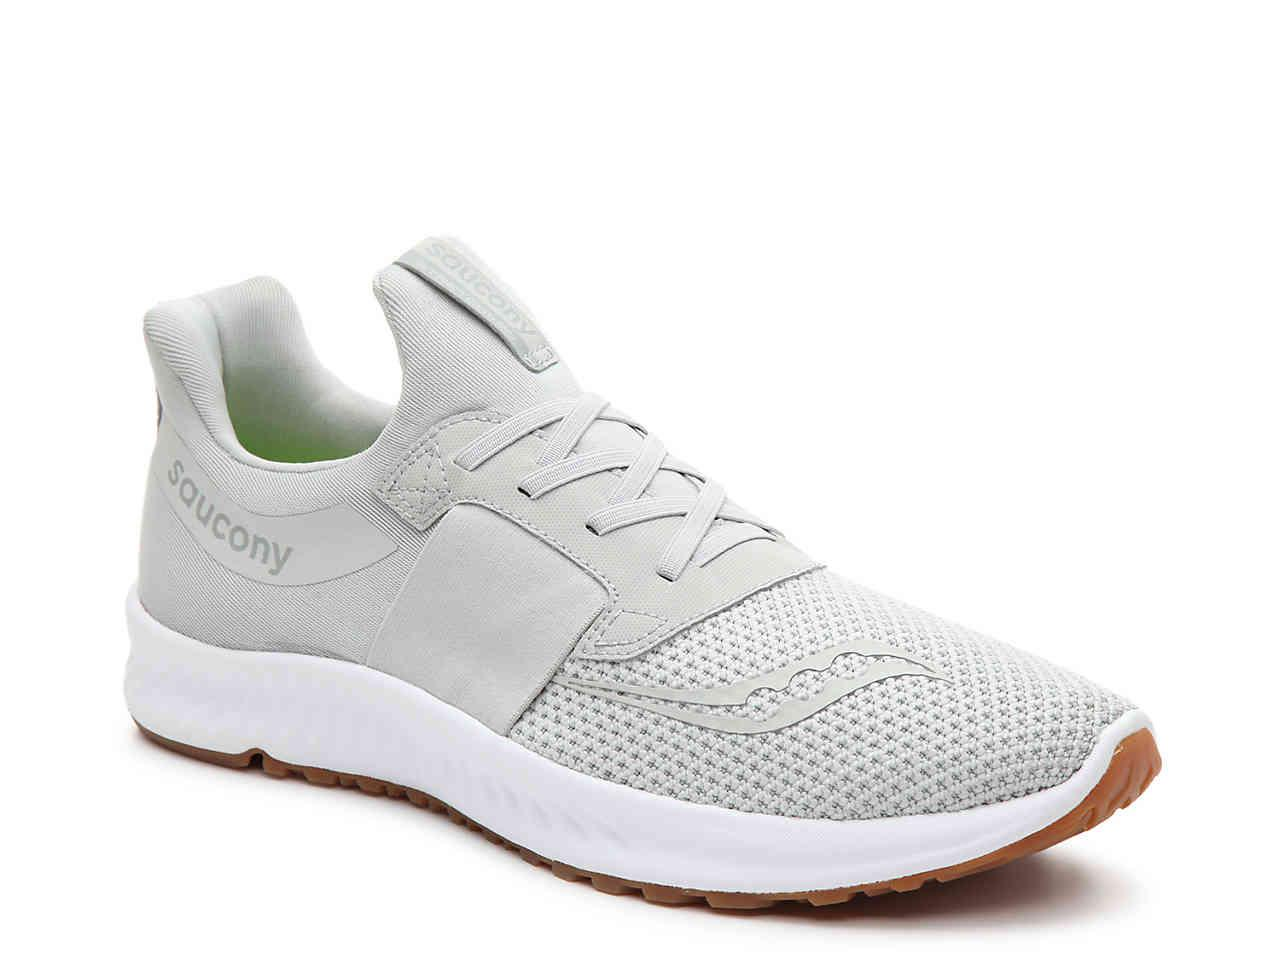 a3d88b96a3 Saucony White Stretch & Go Breeze Lightweight Slip-on Running Shoe for men